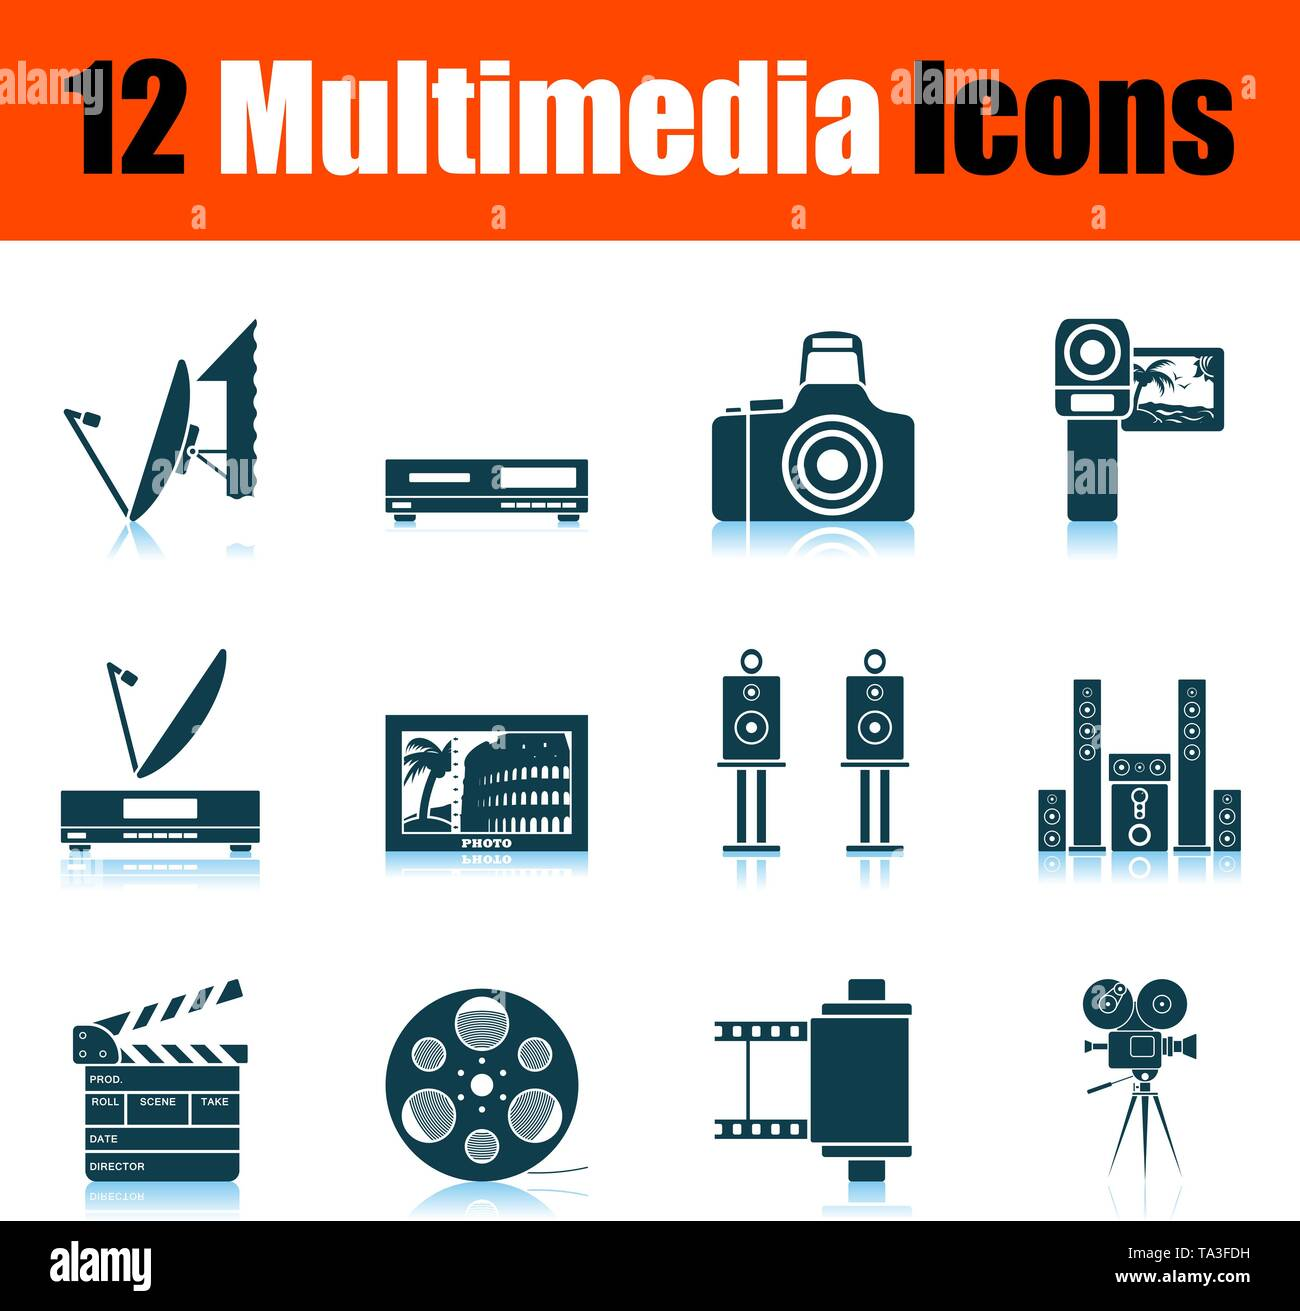 Multimedia Icon Set. Shadow Reflection Design. Vector Illustration. - Stock Image